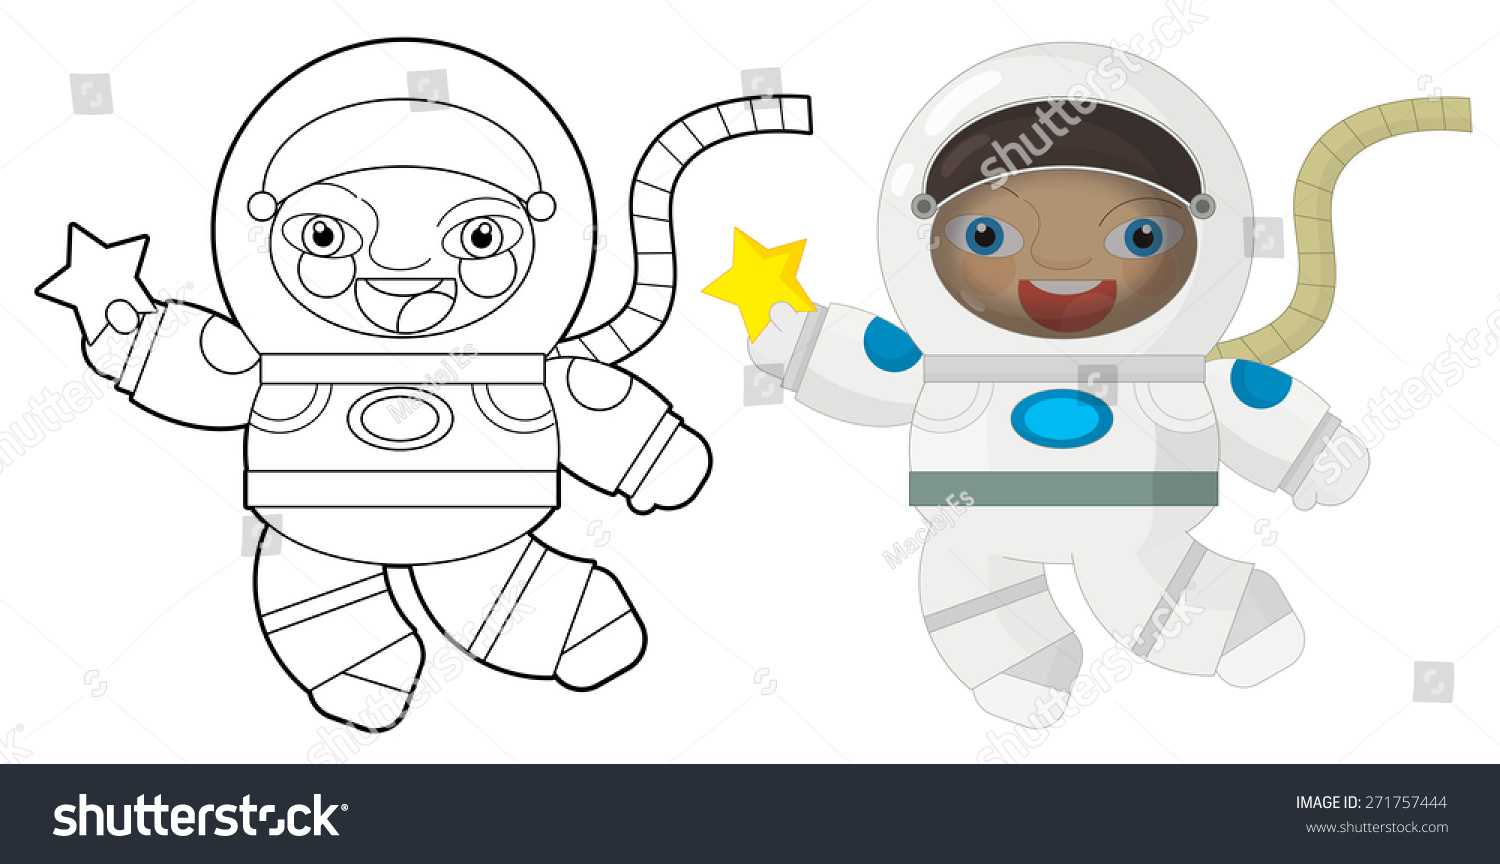 Cartoon Character Astronaut Coloring Page Illustration Stock ...